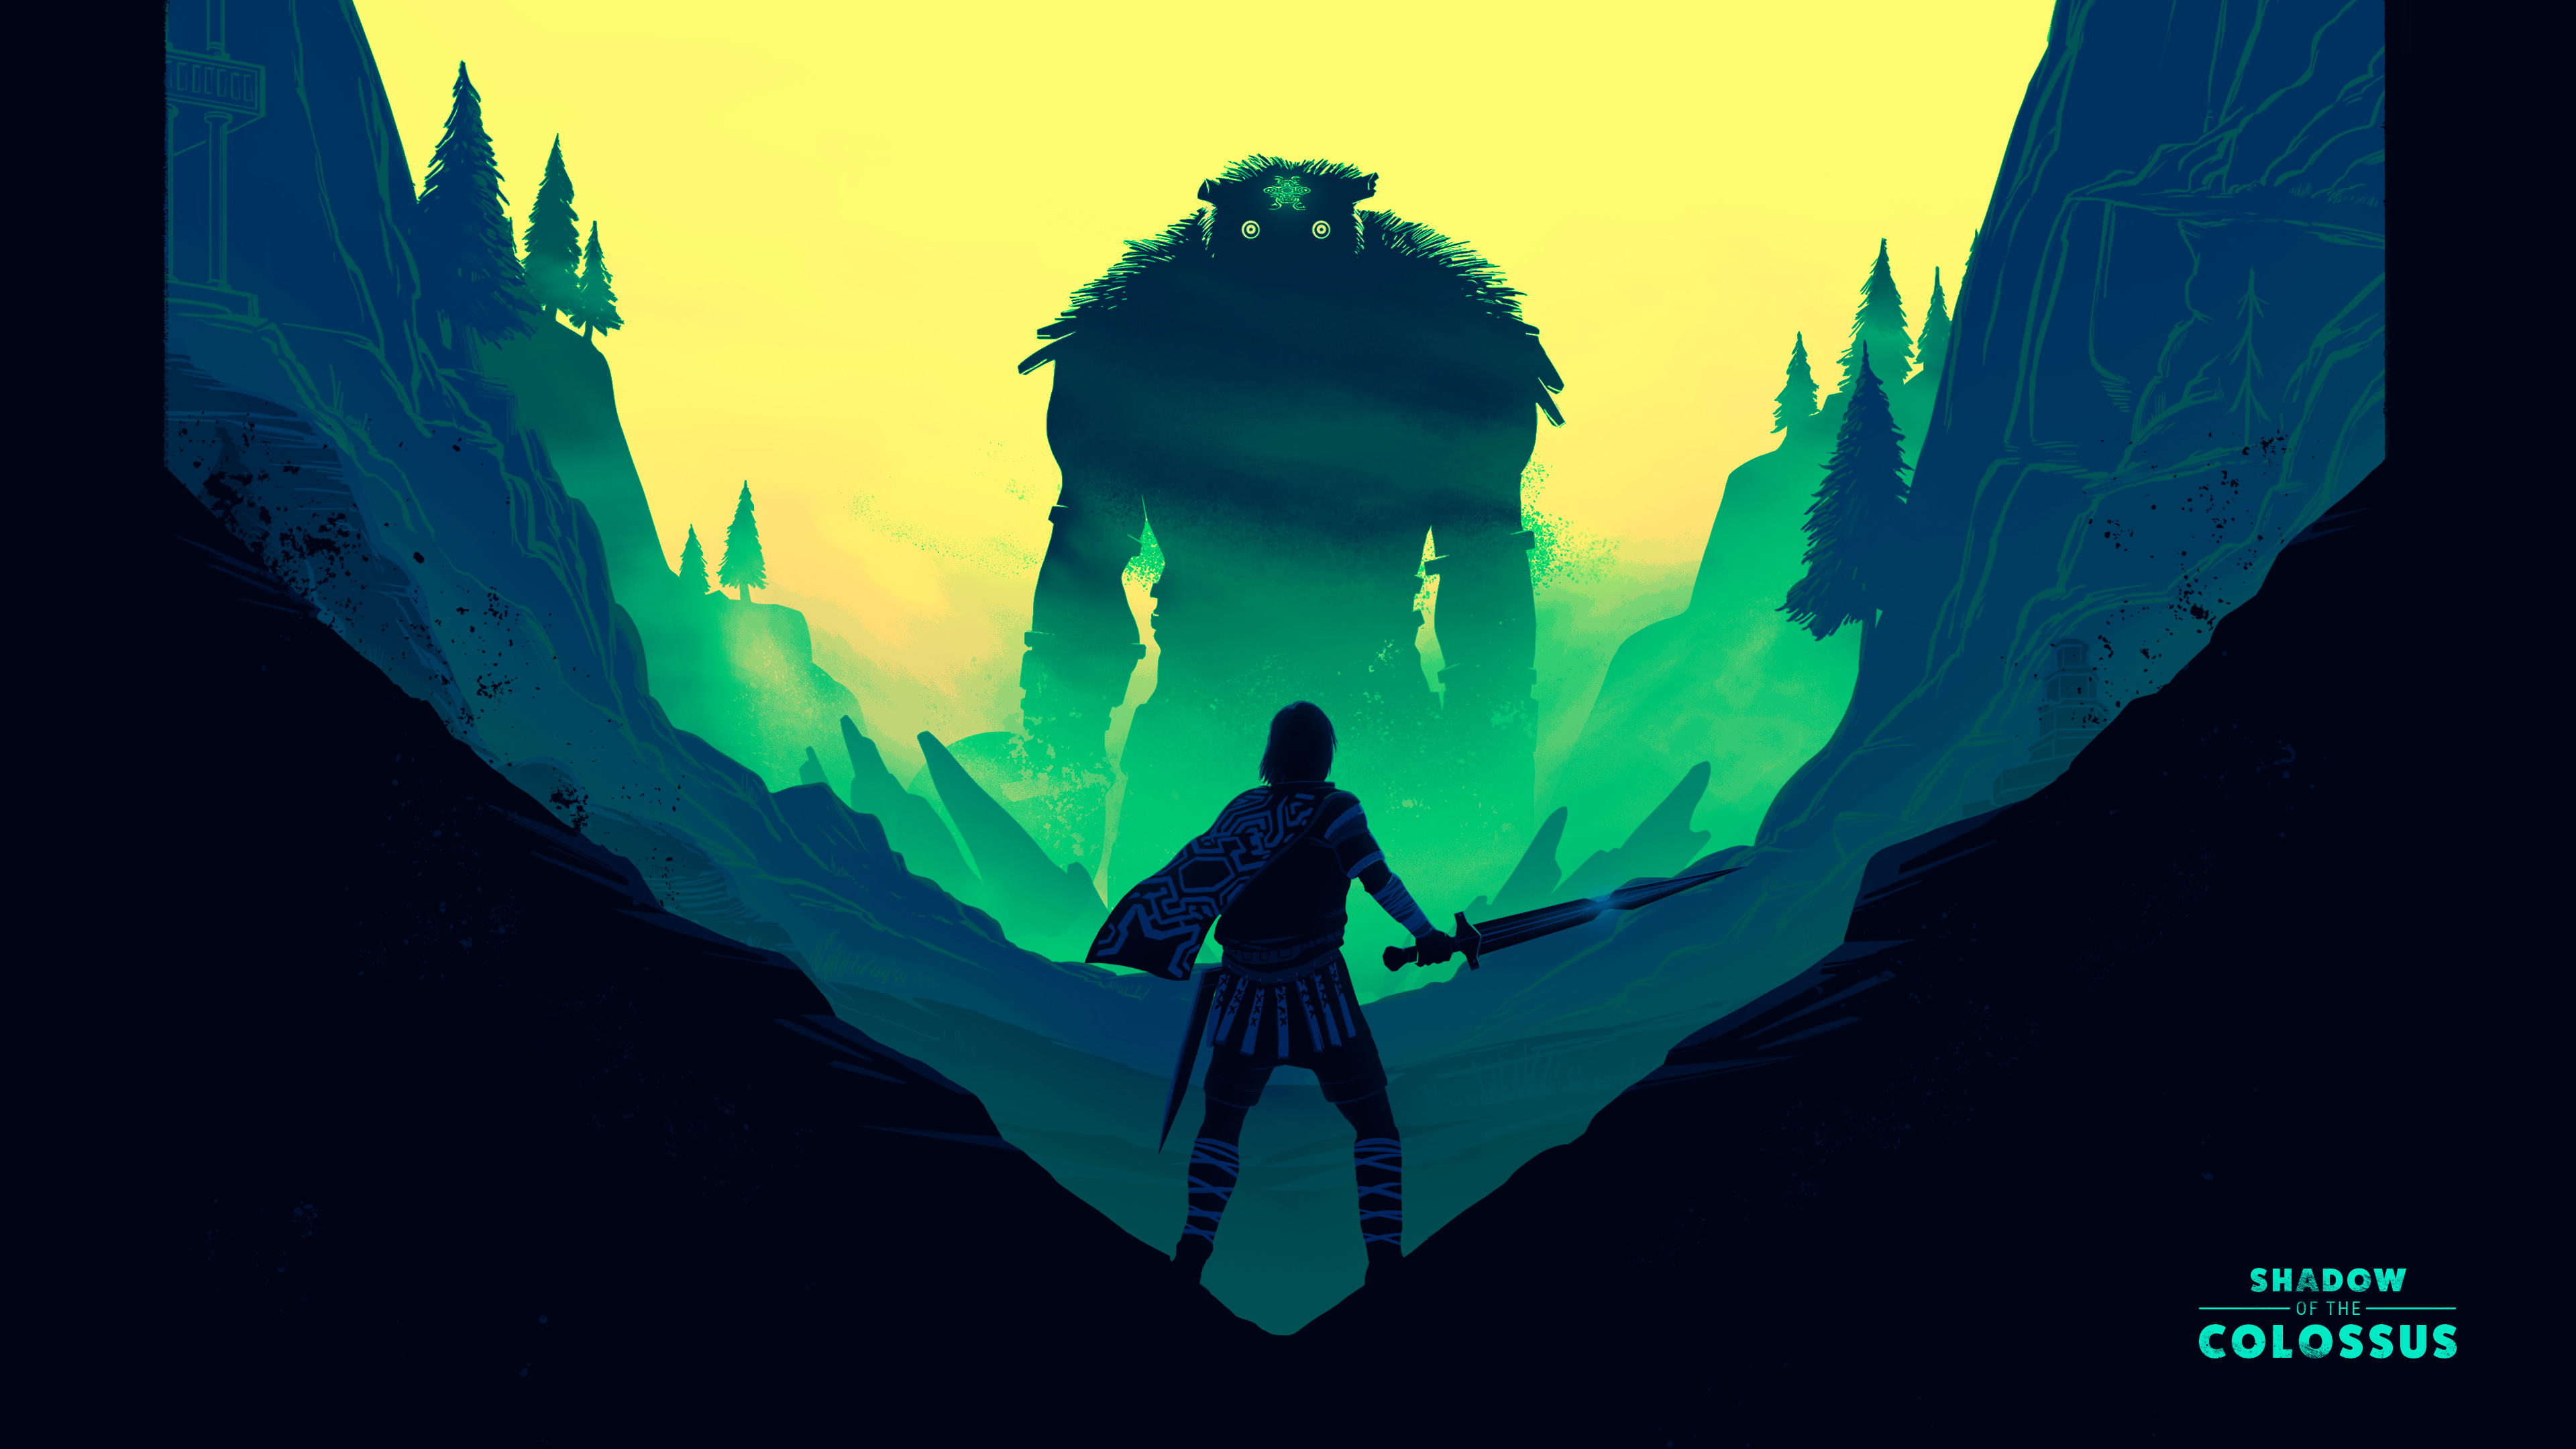 shadow of the colossus fan art illustration 4k 1545589464 - Shadow Of The Colossus Fan Art Illustration 4k - shadow of the colossus wallpapers, ps games wallpapers, hd-wallpapers, games wallpapers, behance wallpapers, 4k-wallpapers